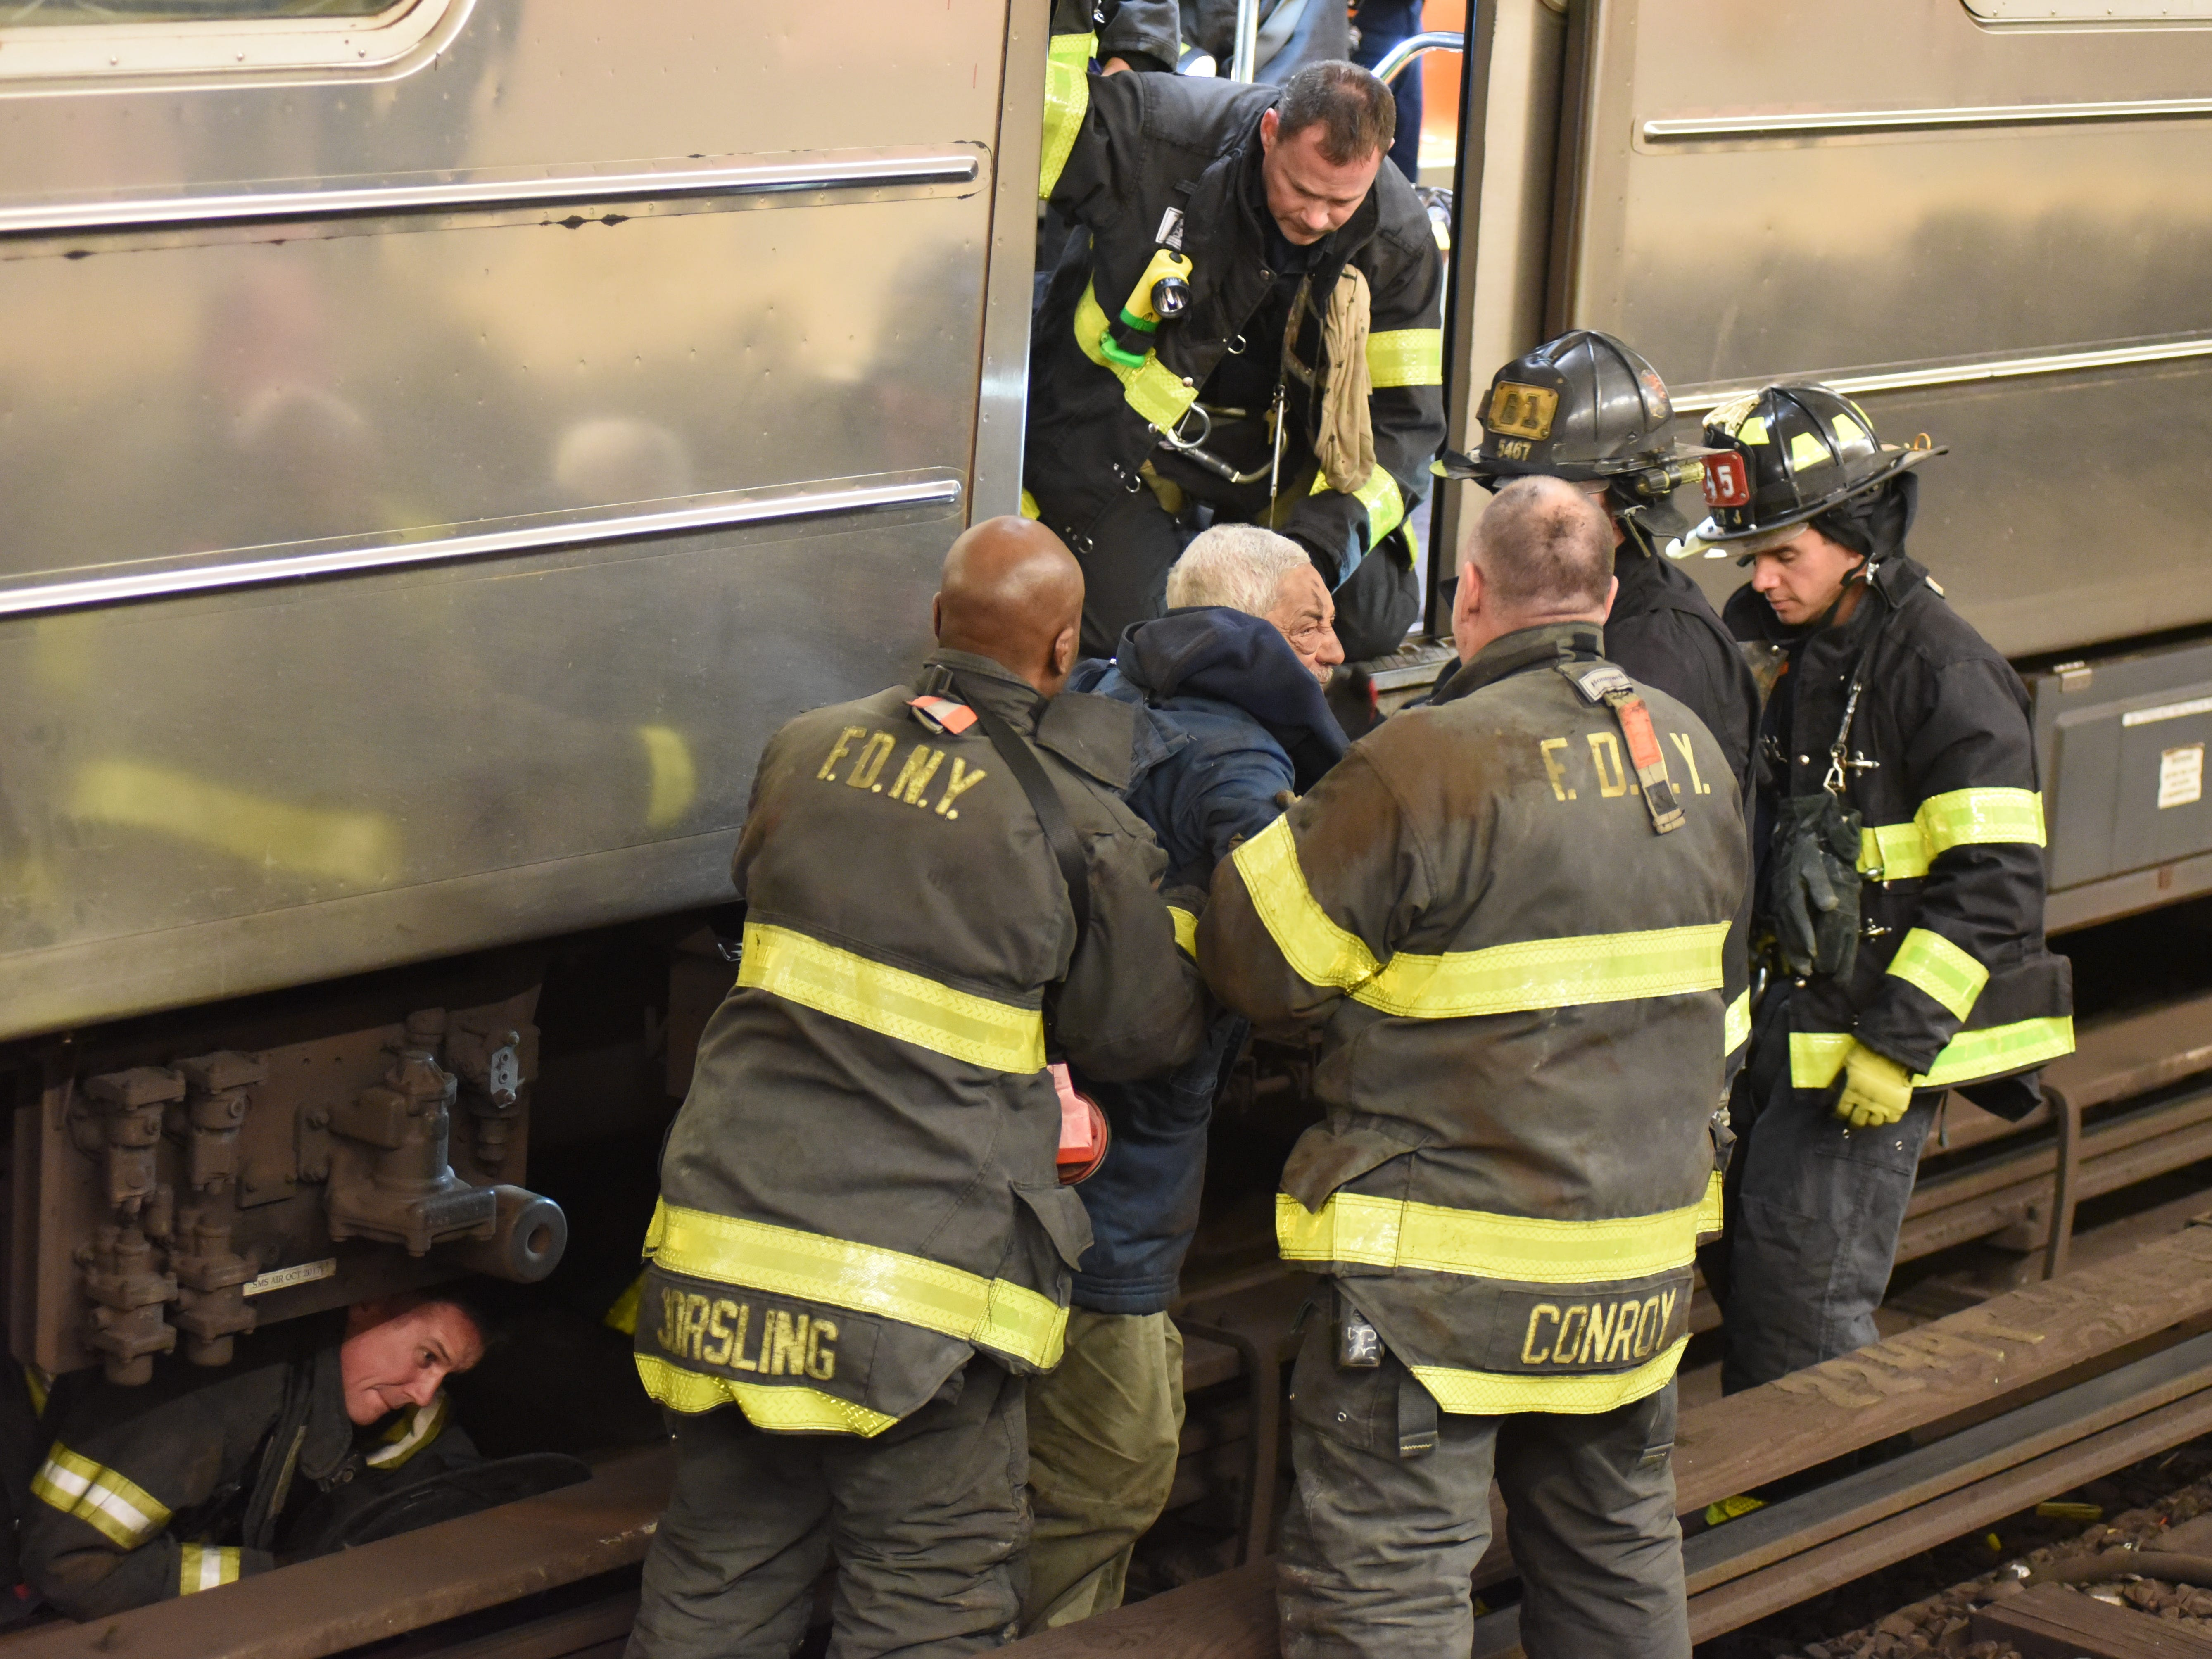 The scene where a man became trapped under a northbound 1 subway train at the W181st Street station in New York, NY  around 10:30 p.m. on Jan. 4, 2019. The man was rescued by firefighters and appeared to be uninjured after being in the space between the subway tracks.